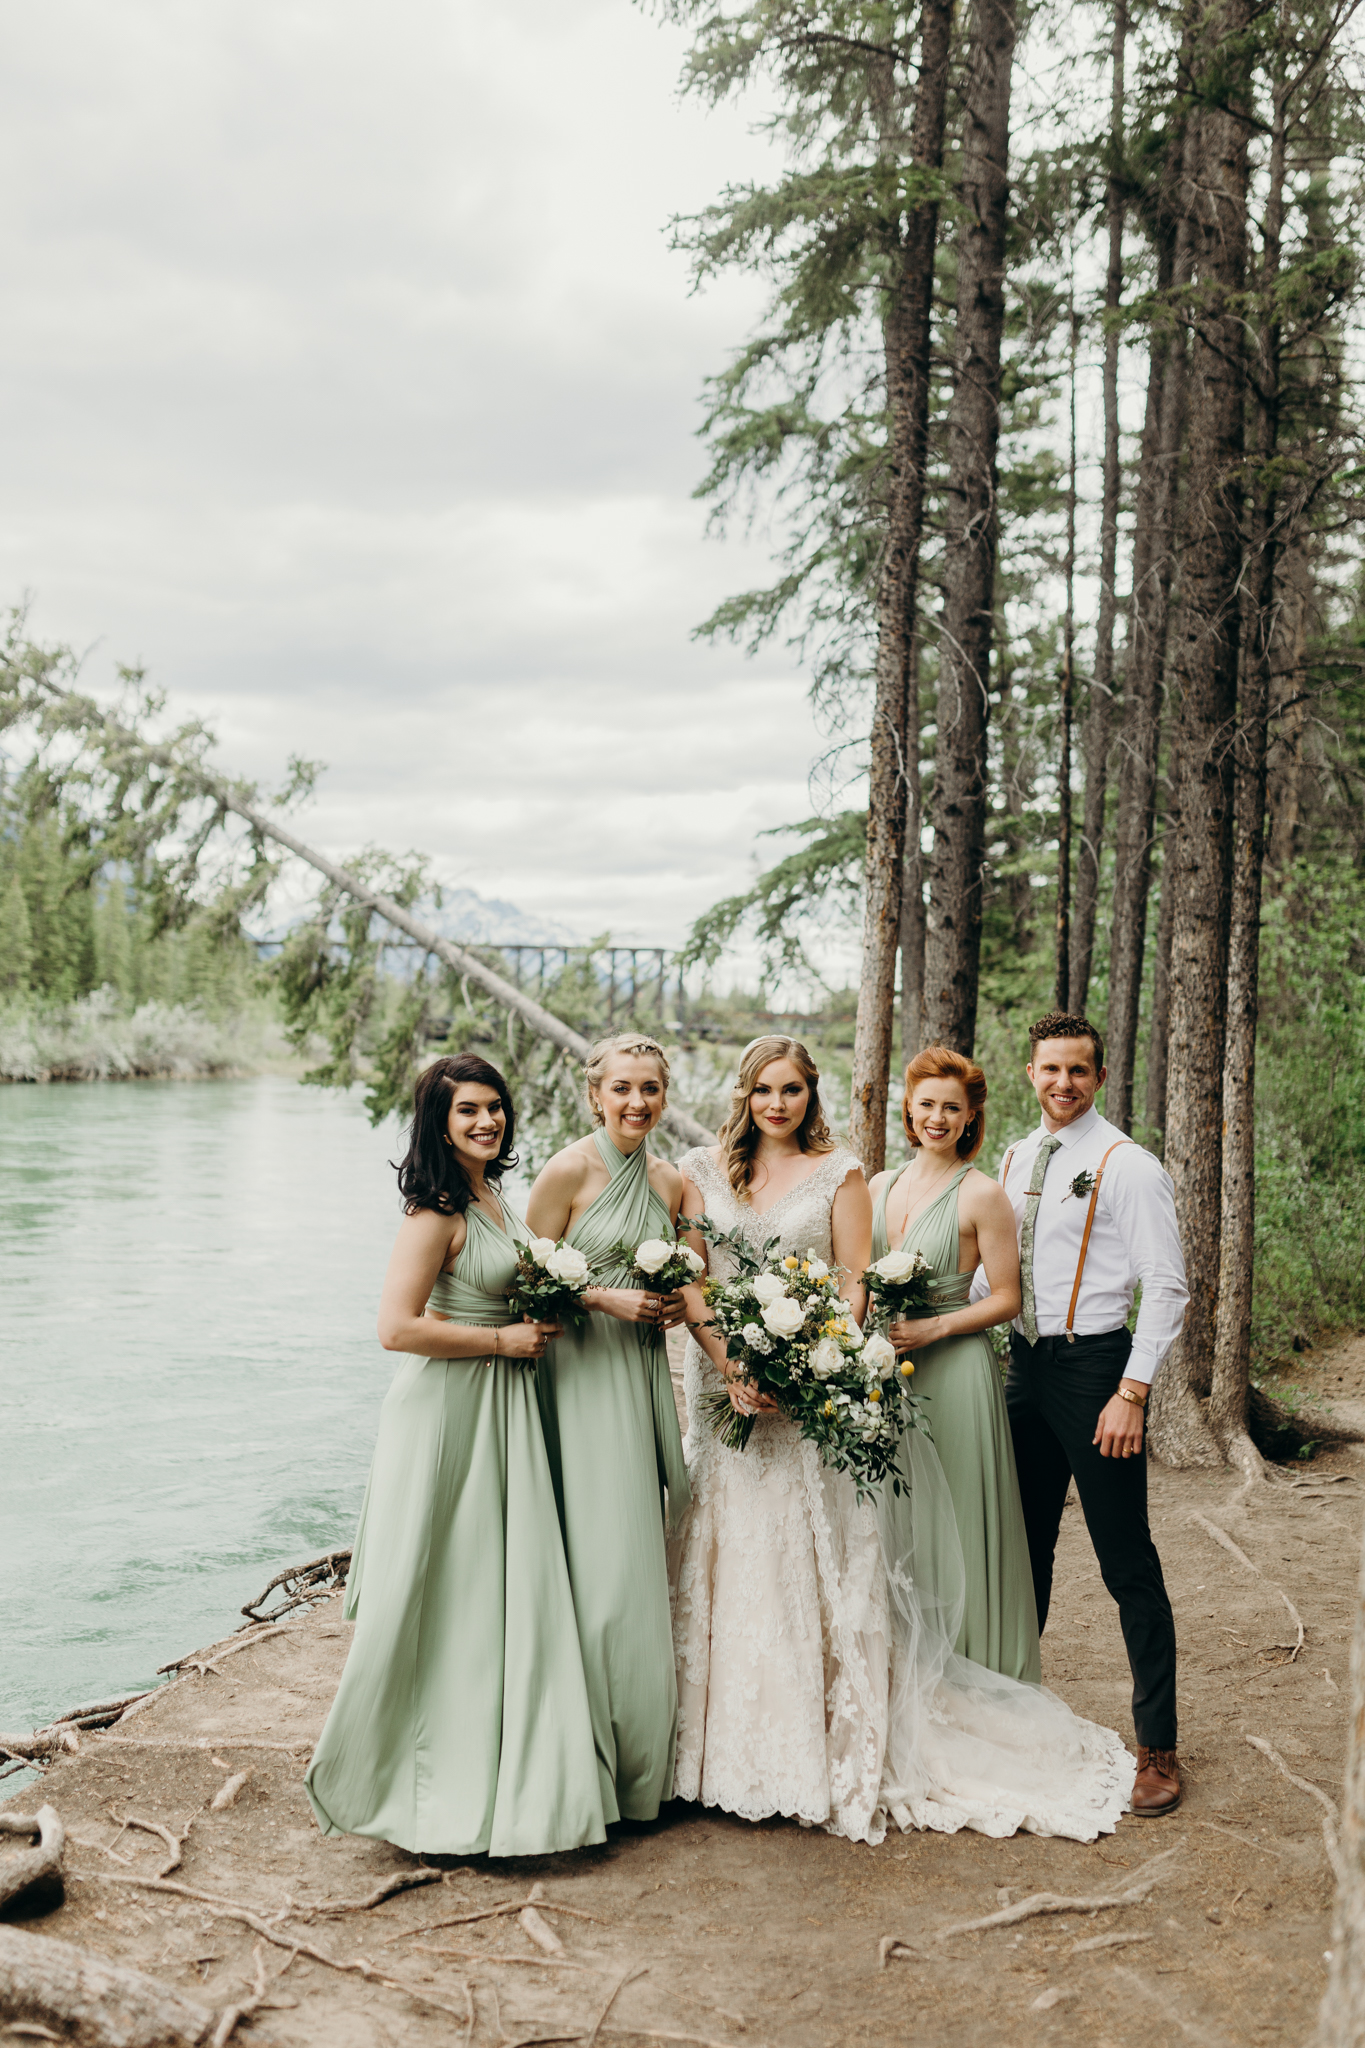 Brides and bridesmaids portrait at Bow River Canmore destination wedding